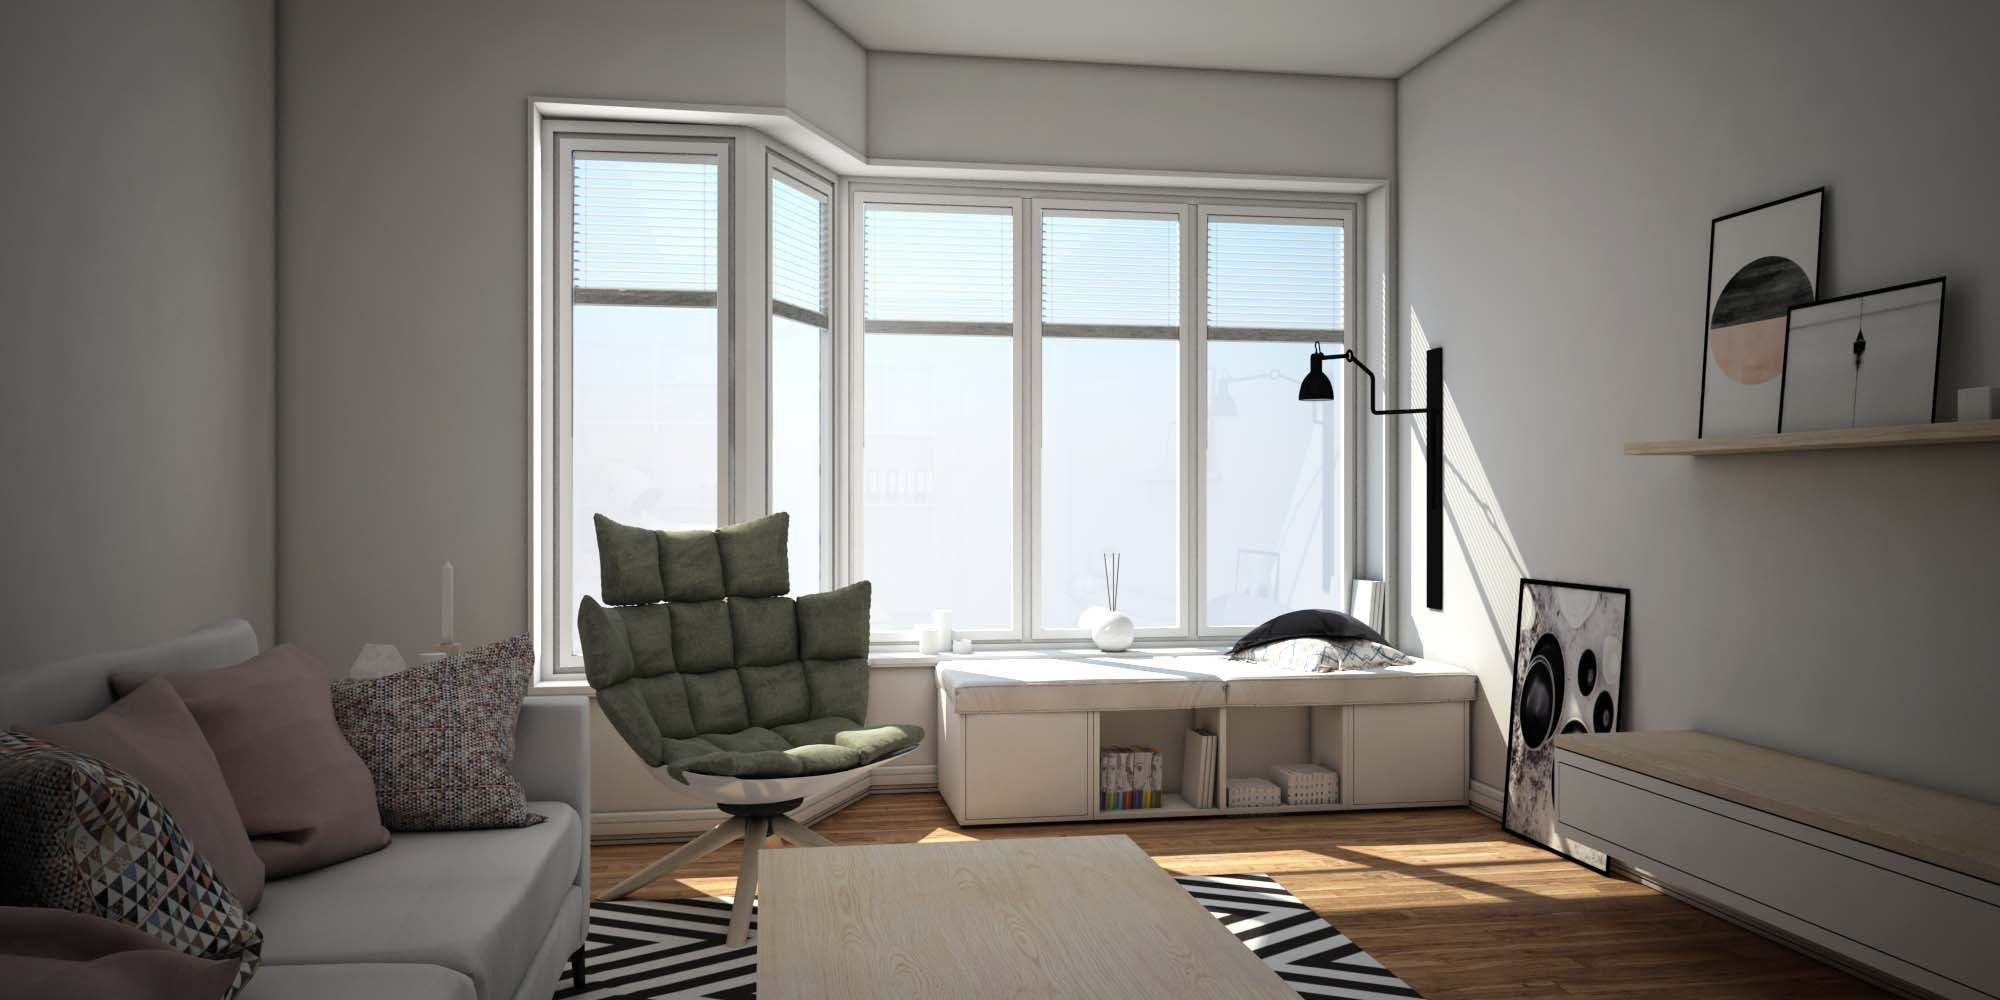 Tutorial using vray and sketchfab to render and share - What software do interior designers use ...